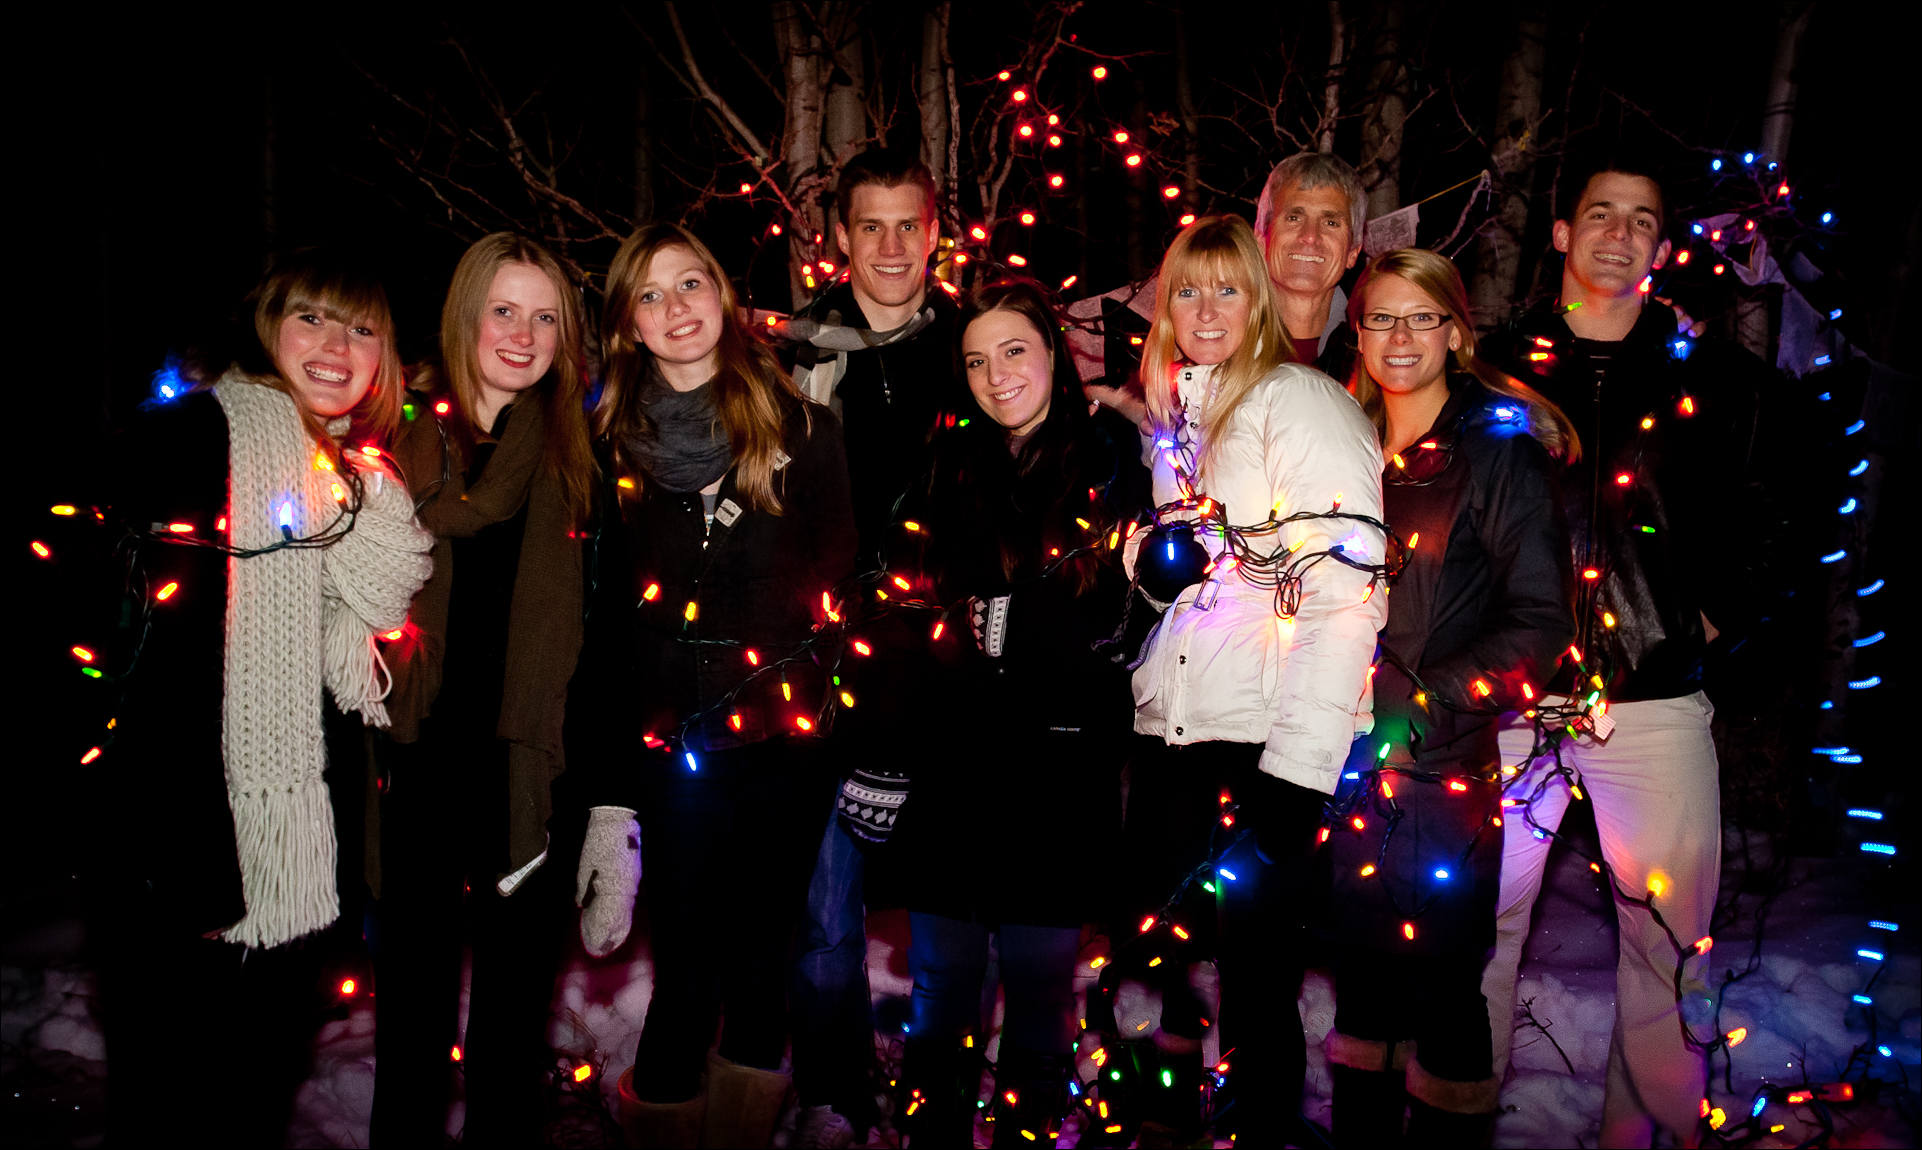 Family Christmas Picture Lights Christopher Martin Photography